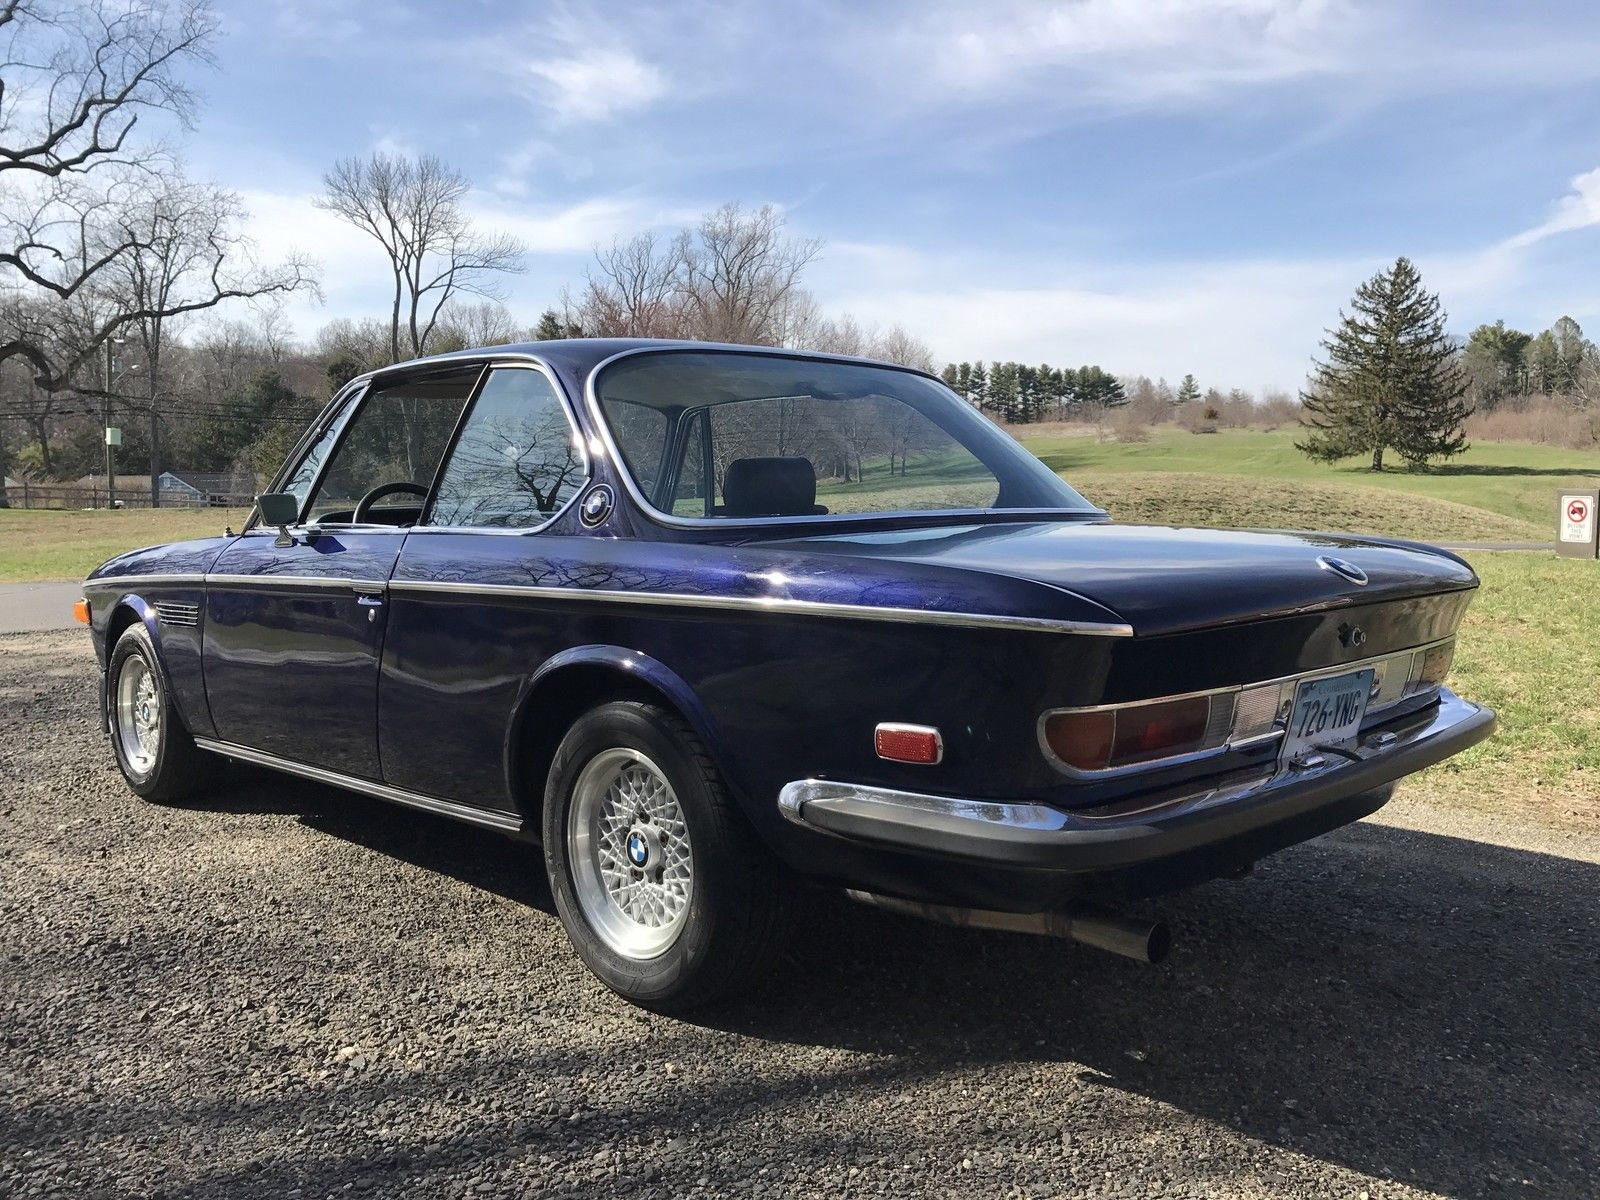 for sale 1971 bmw 2800 cs with a m90 inline six engine. Black Bedroom Furniture Sets. Home Design Ideas